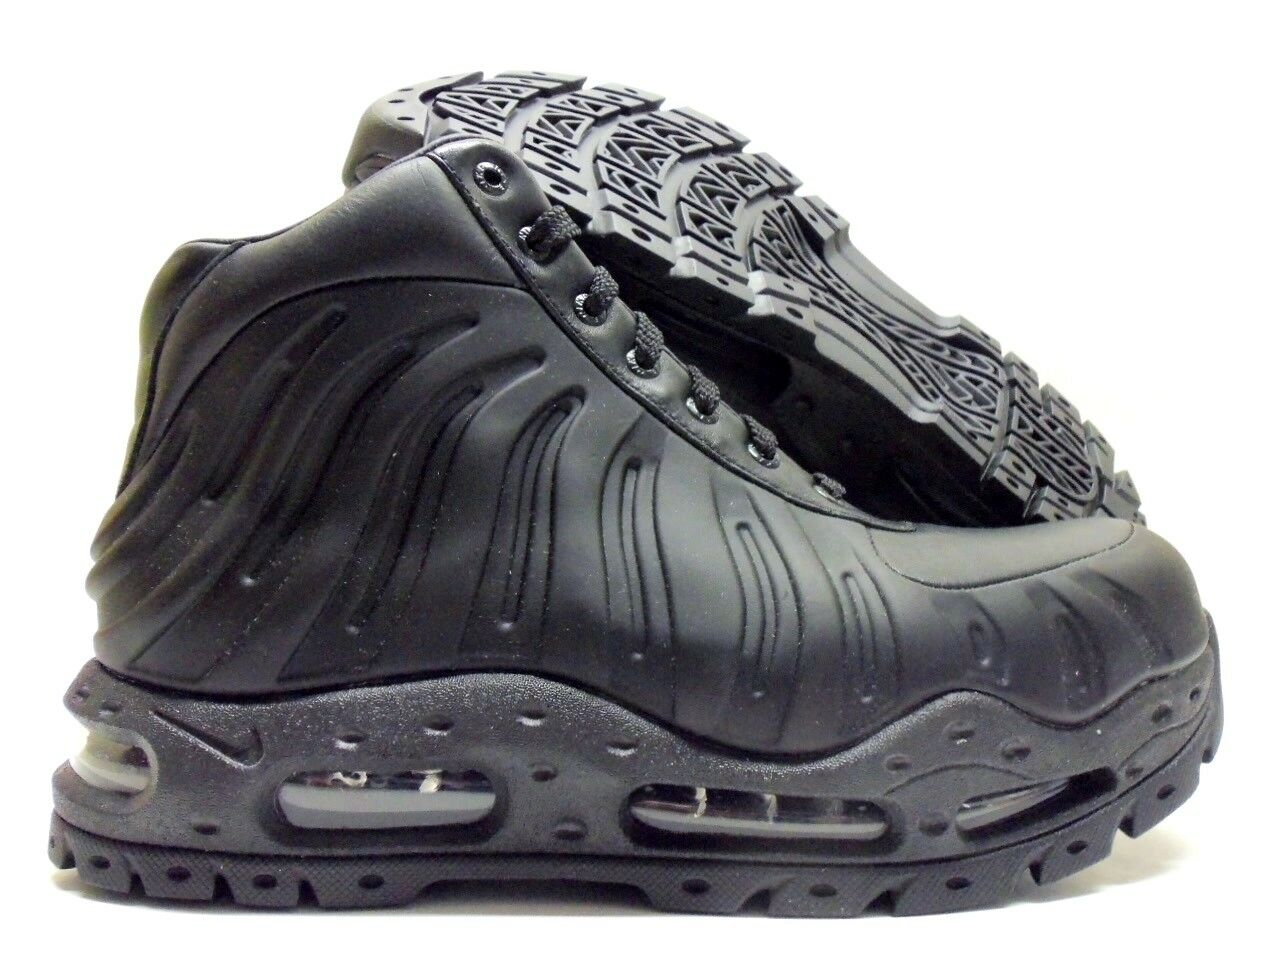 NIKE AIR MAX FOAMDOME BOOT BLACK/BLACK SIZE MEN'S 7.5 [843749-002]